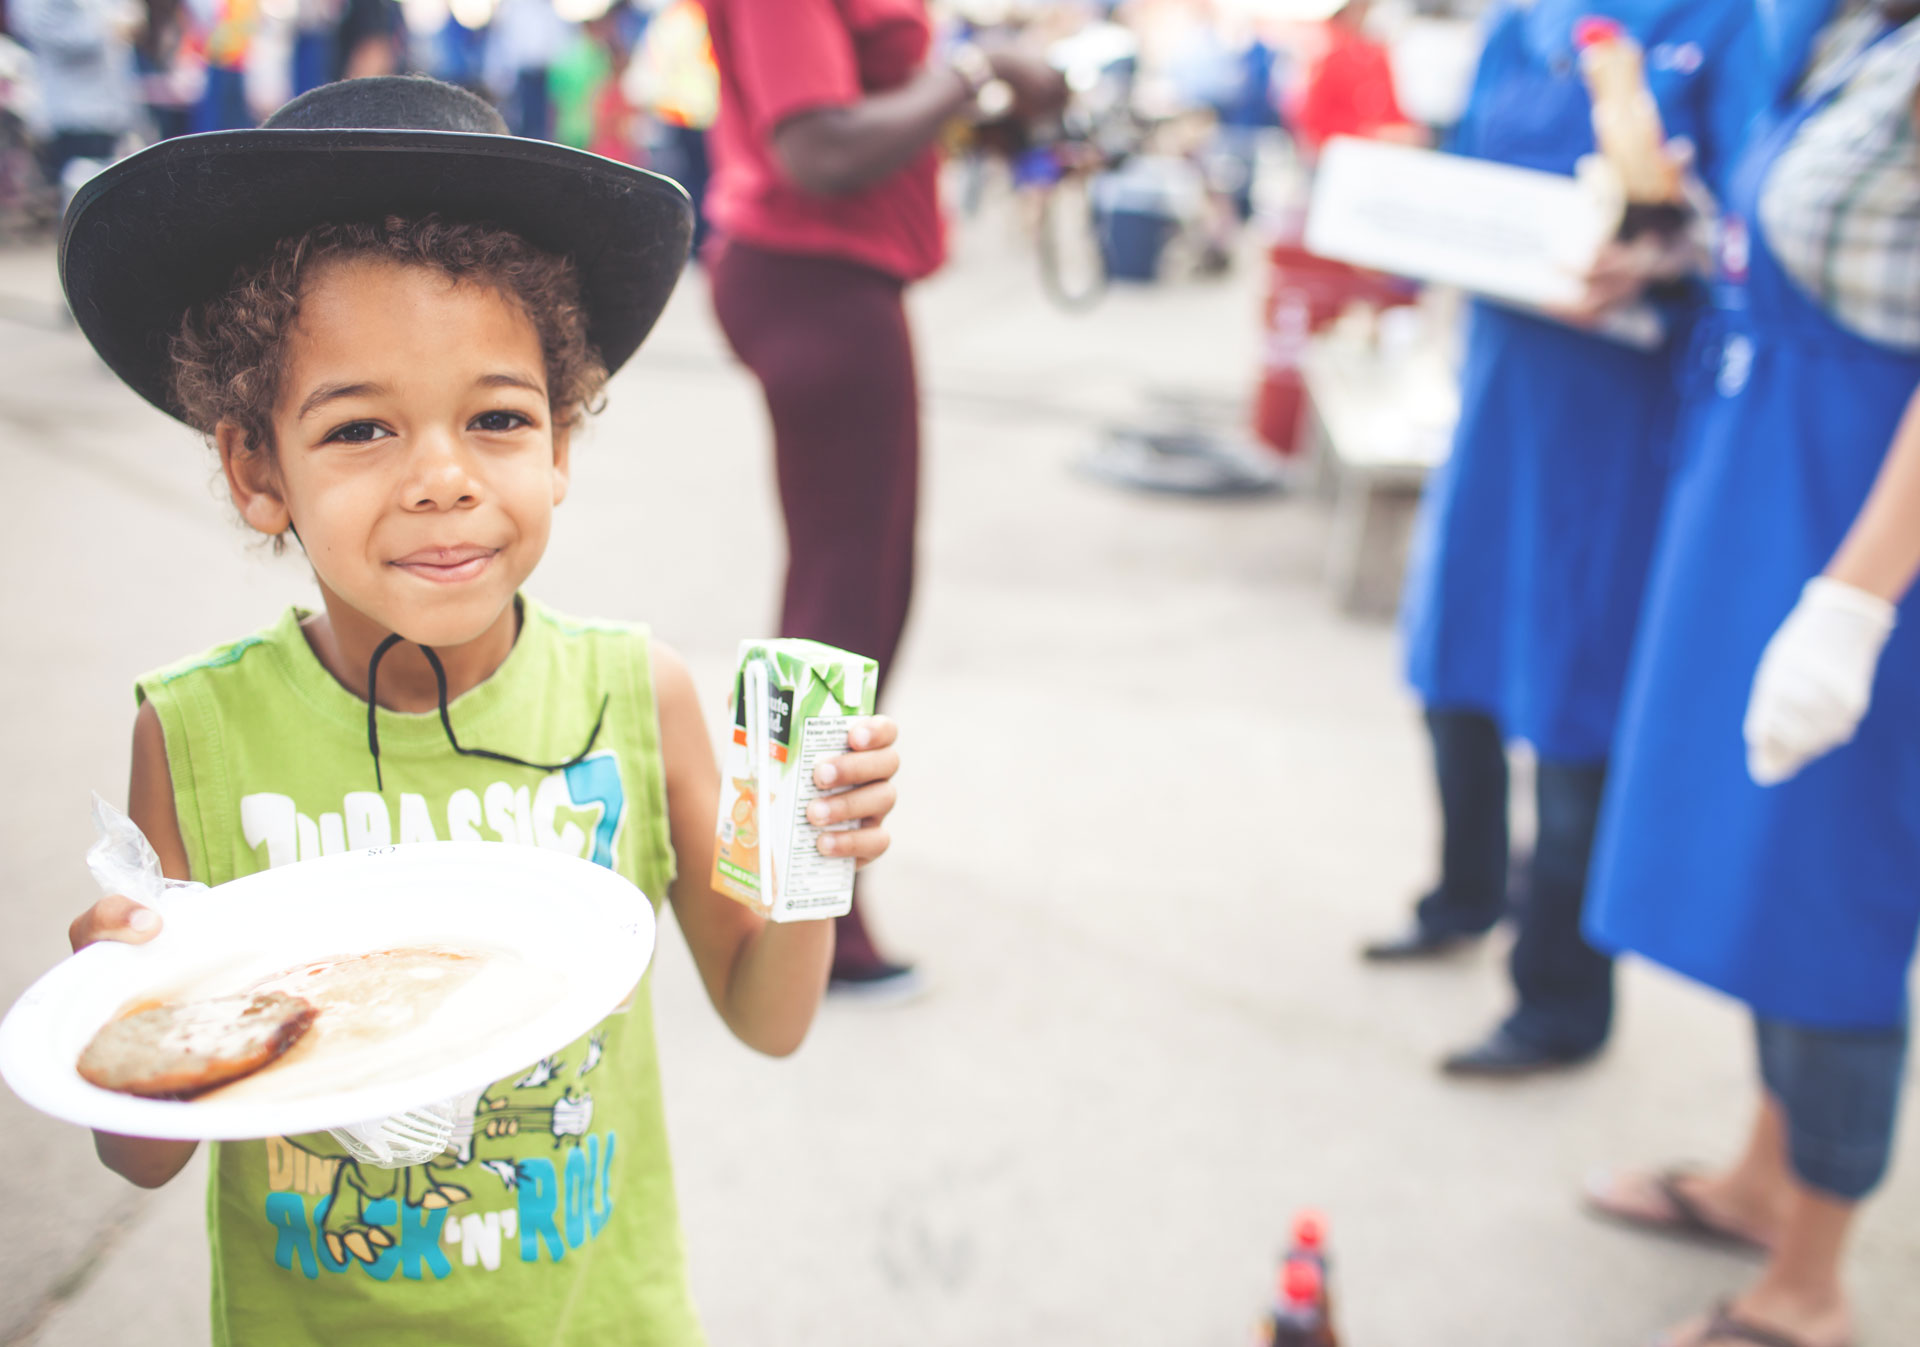 Enjoy a pancake breakfast during the Calgary Stampede.